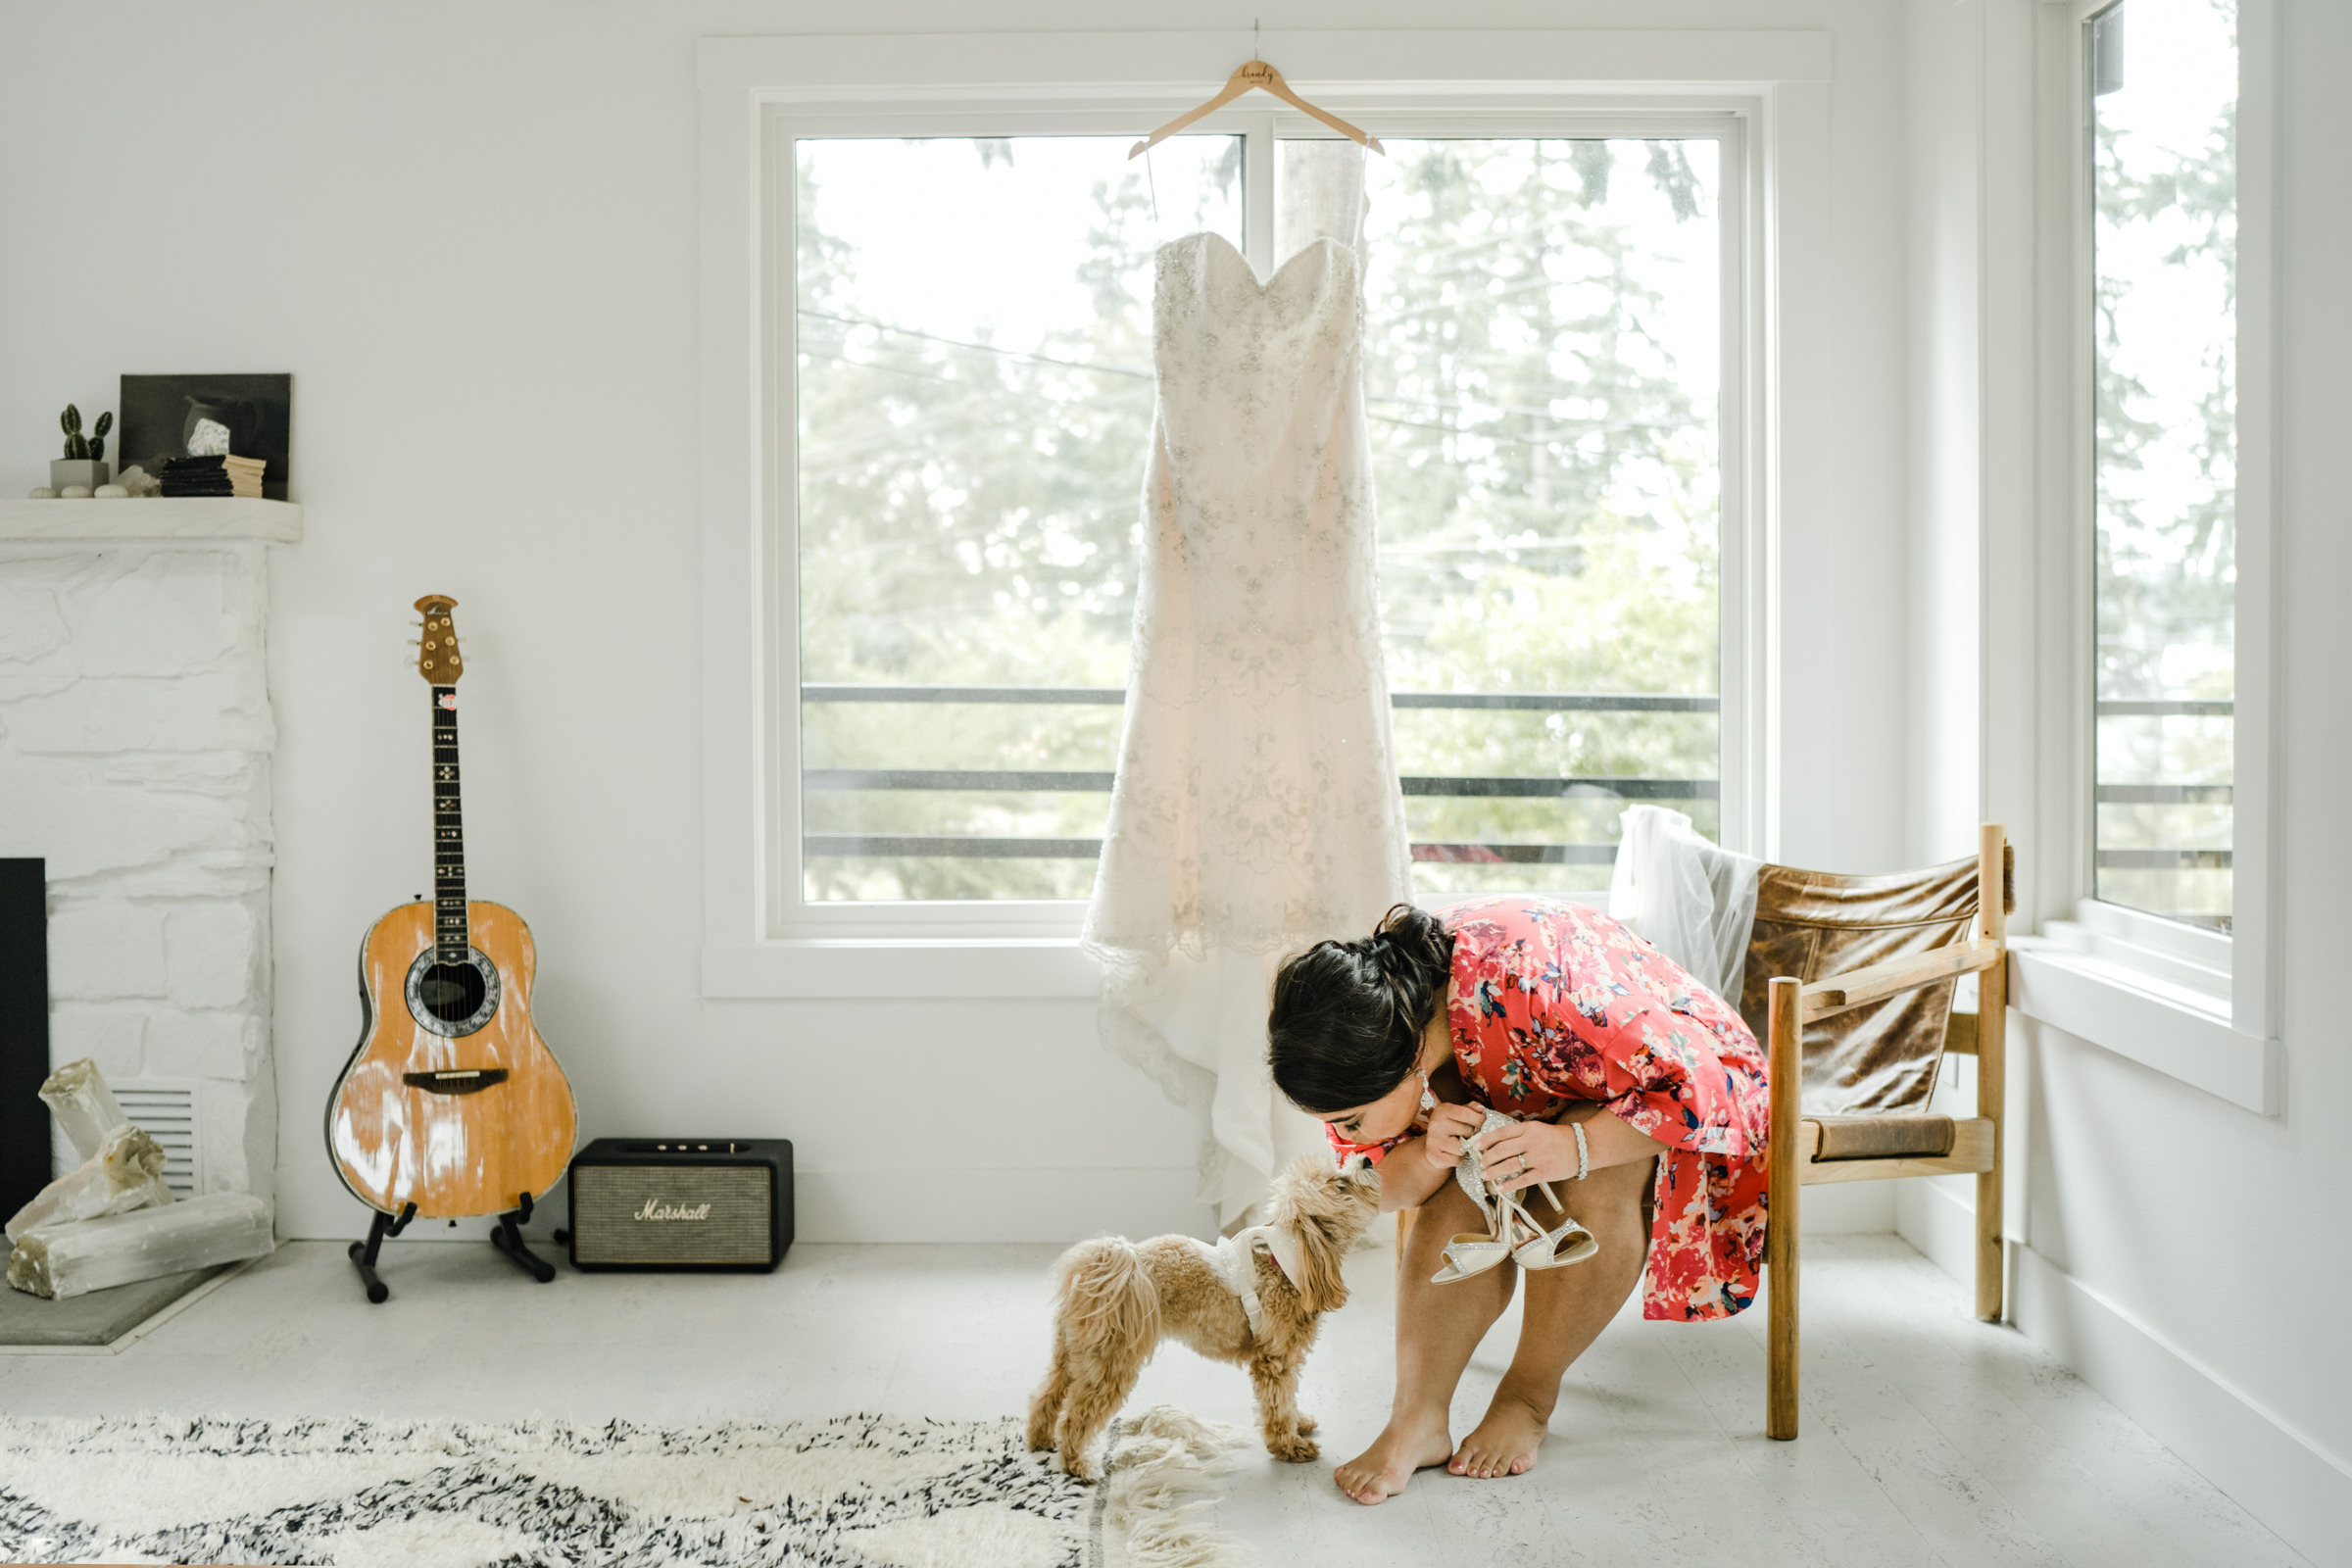 Bride in red robe kisses dog - photo by Sasha Reiko Photography